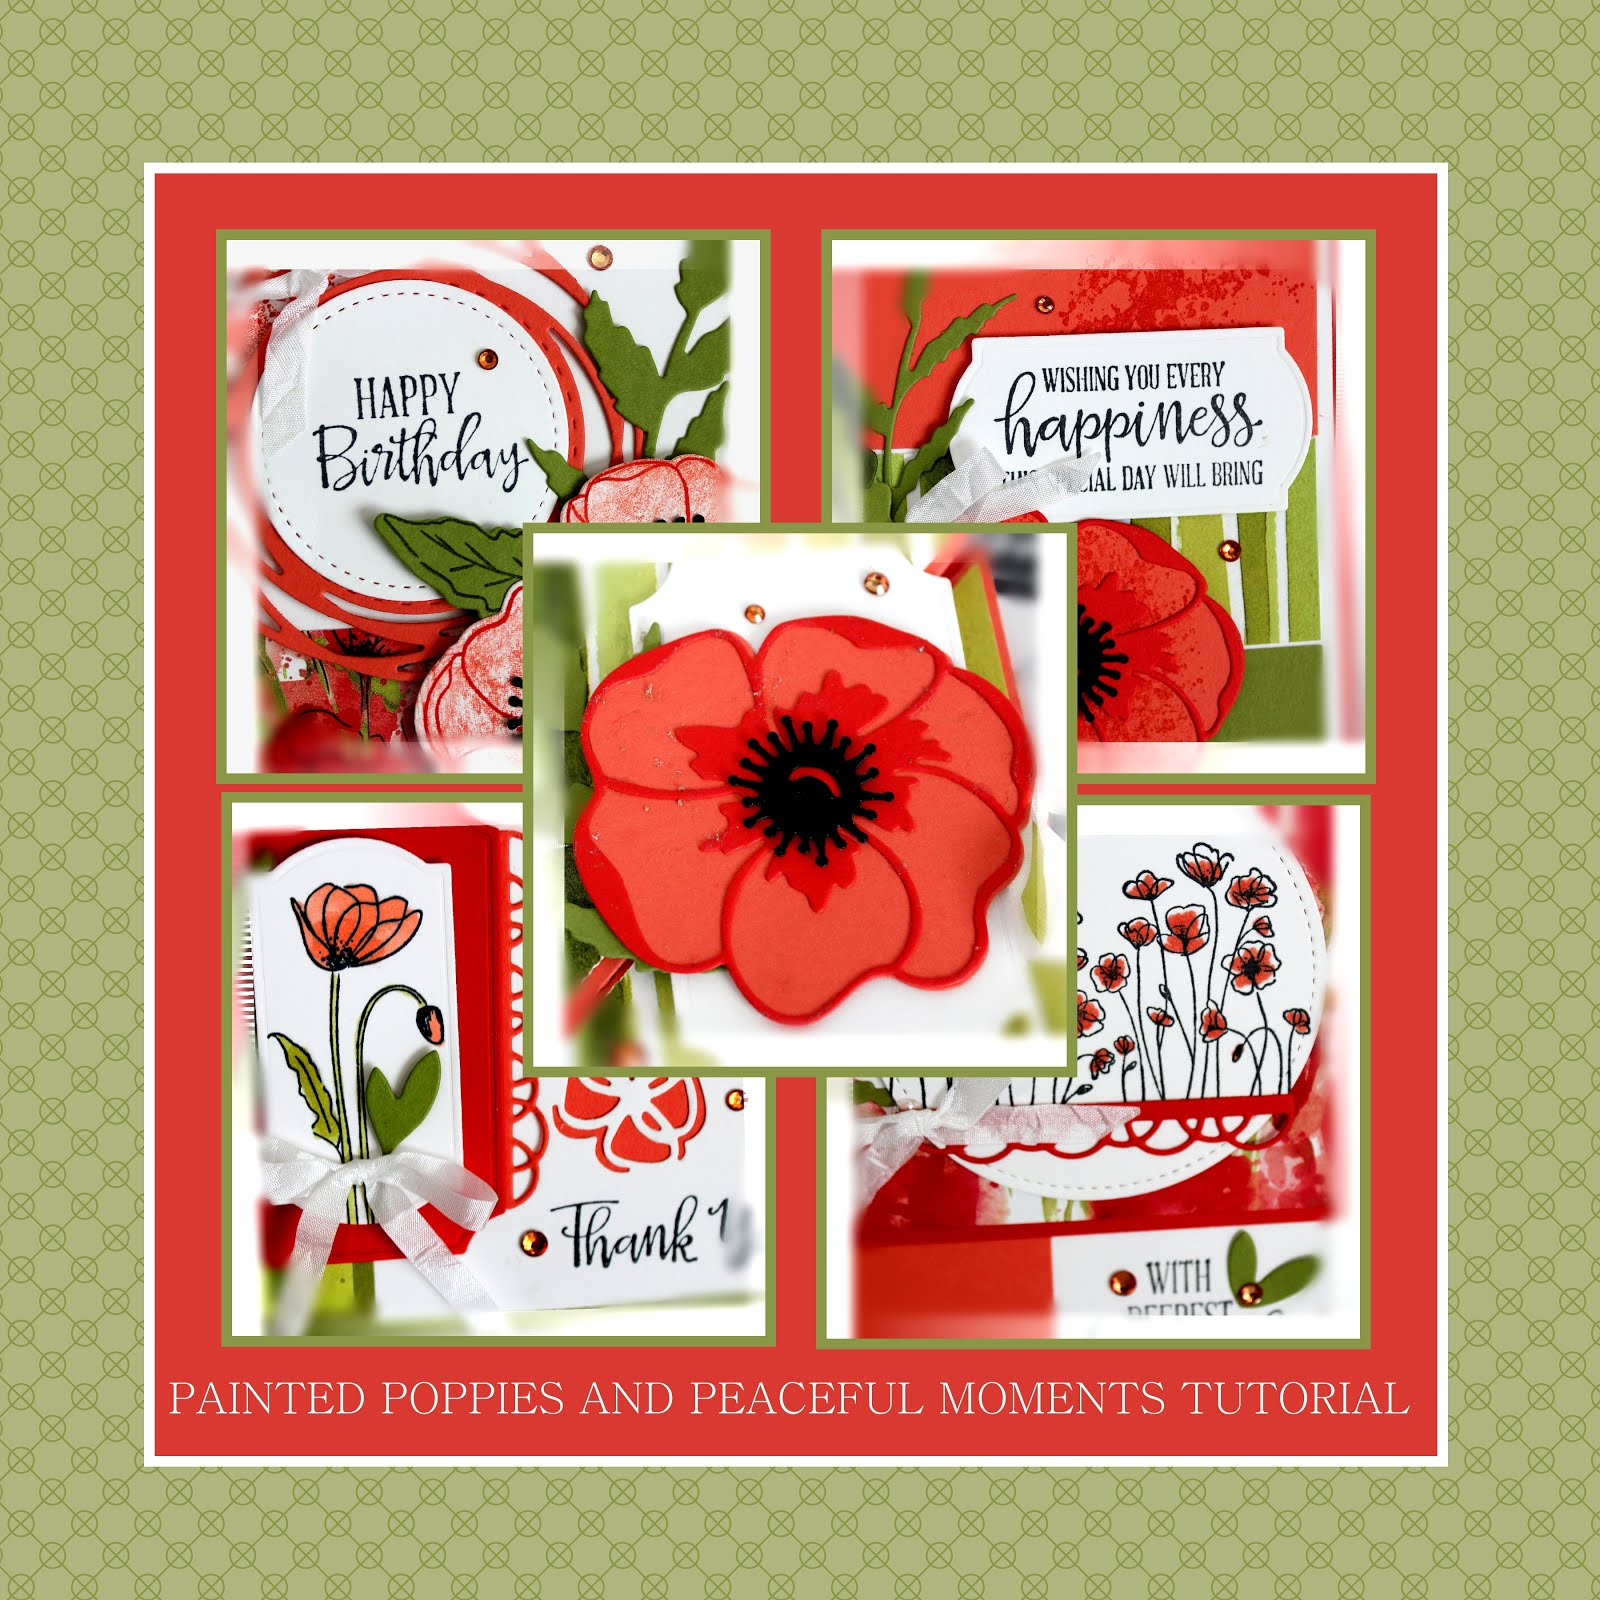 February 2010 Painted Poppies and Peaceful Moments Tutorial